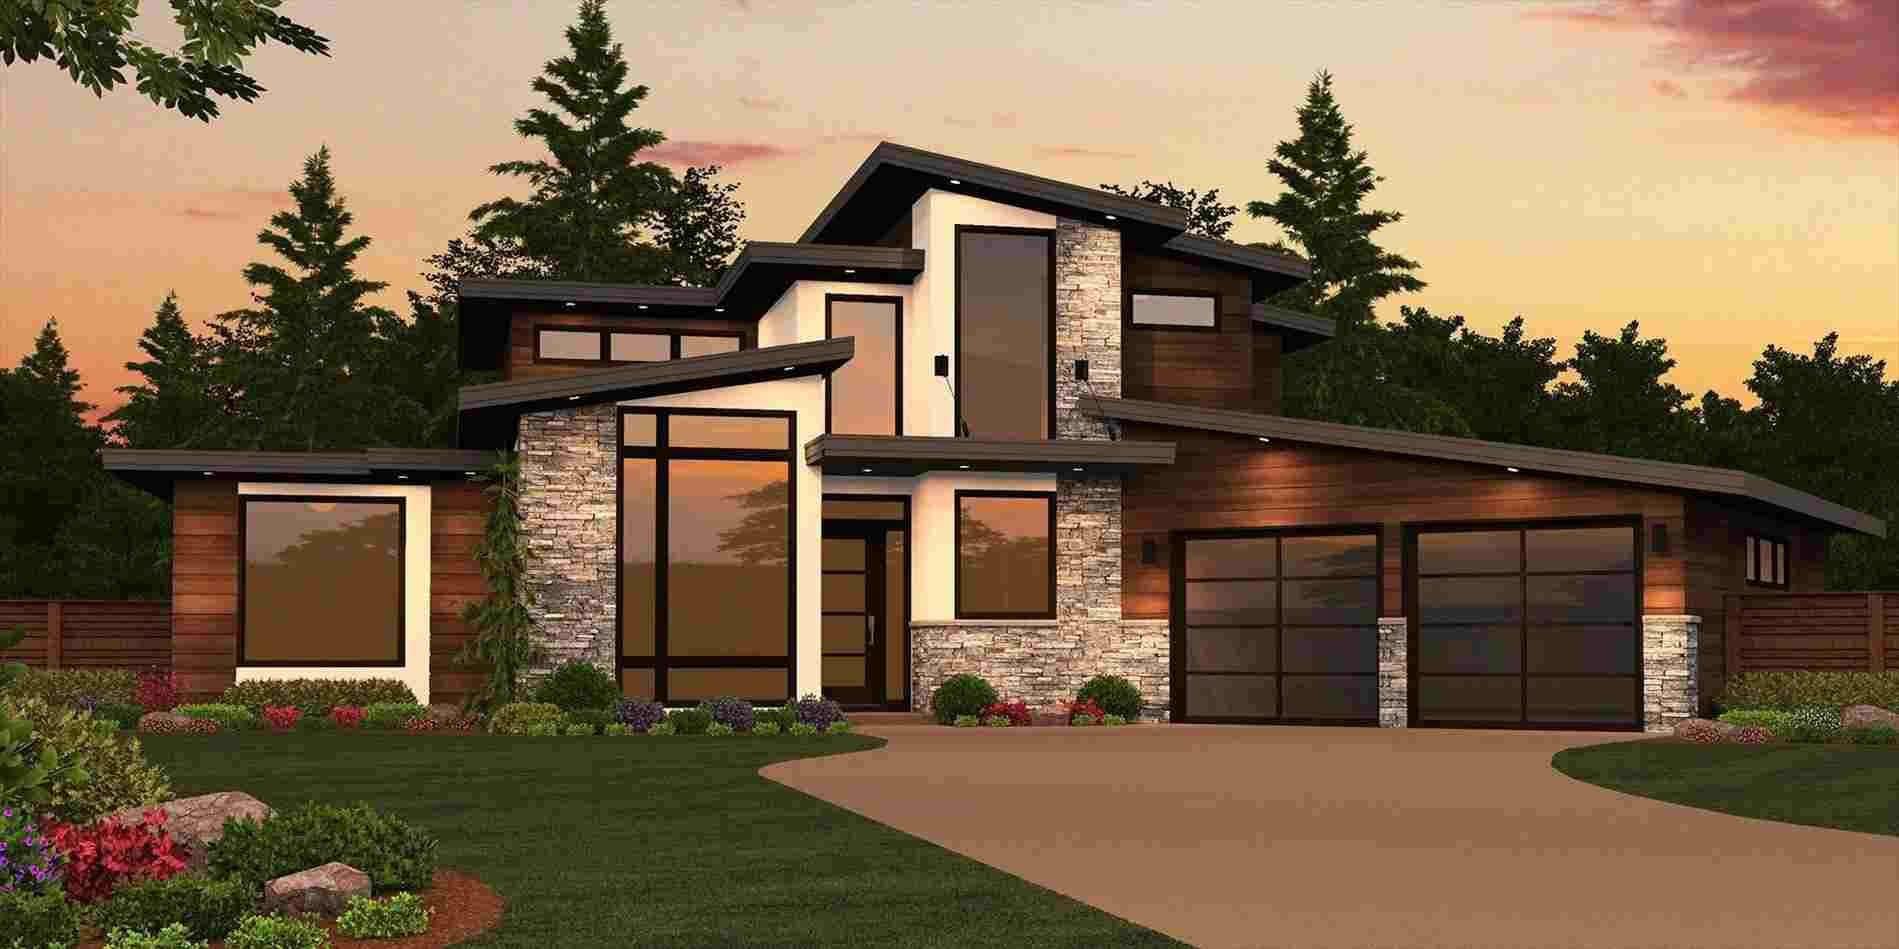 Image result for modern bloxburg house ideas | Small ...